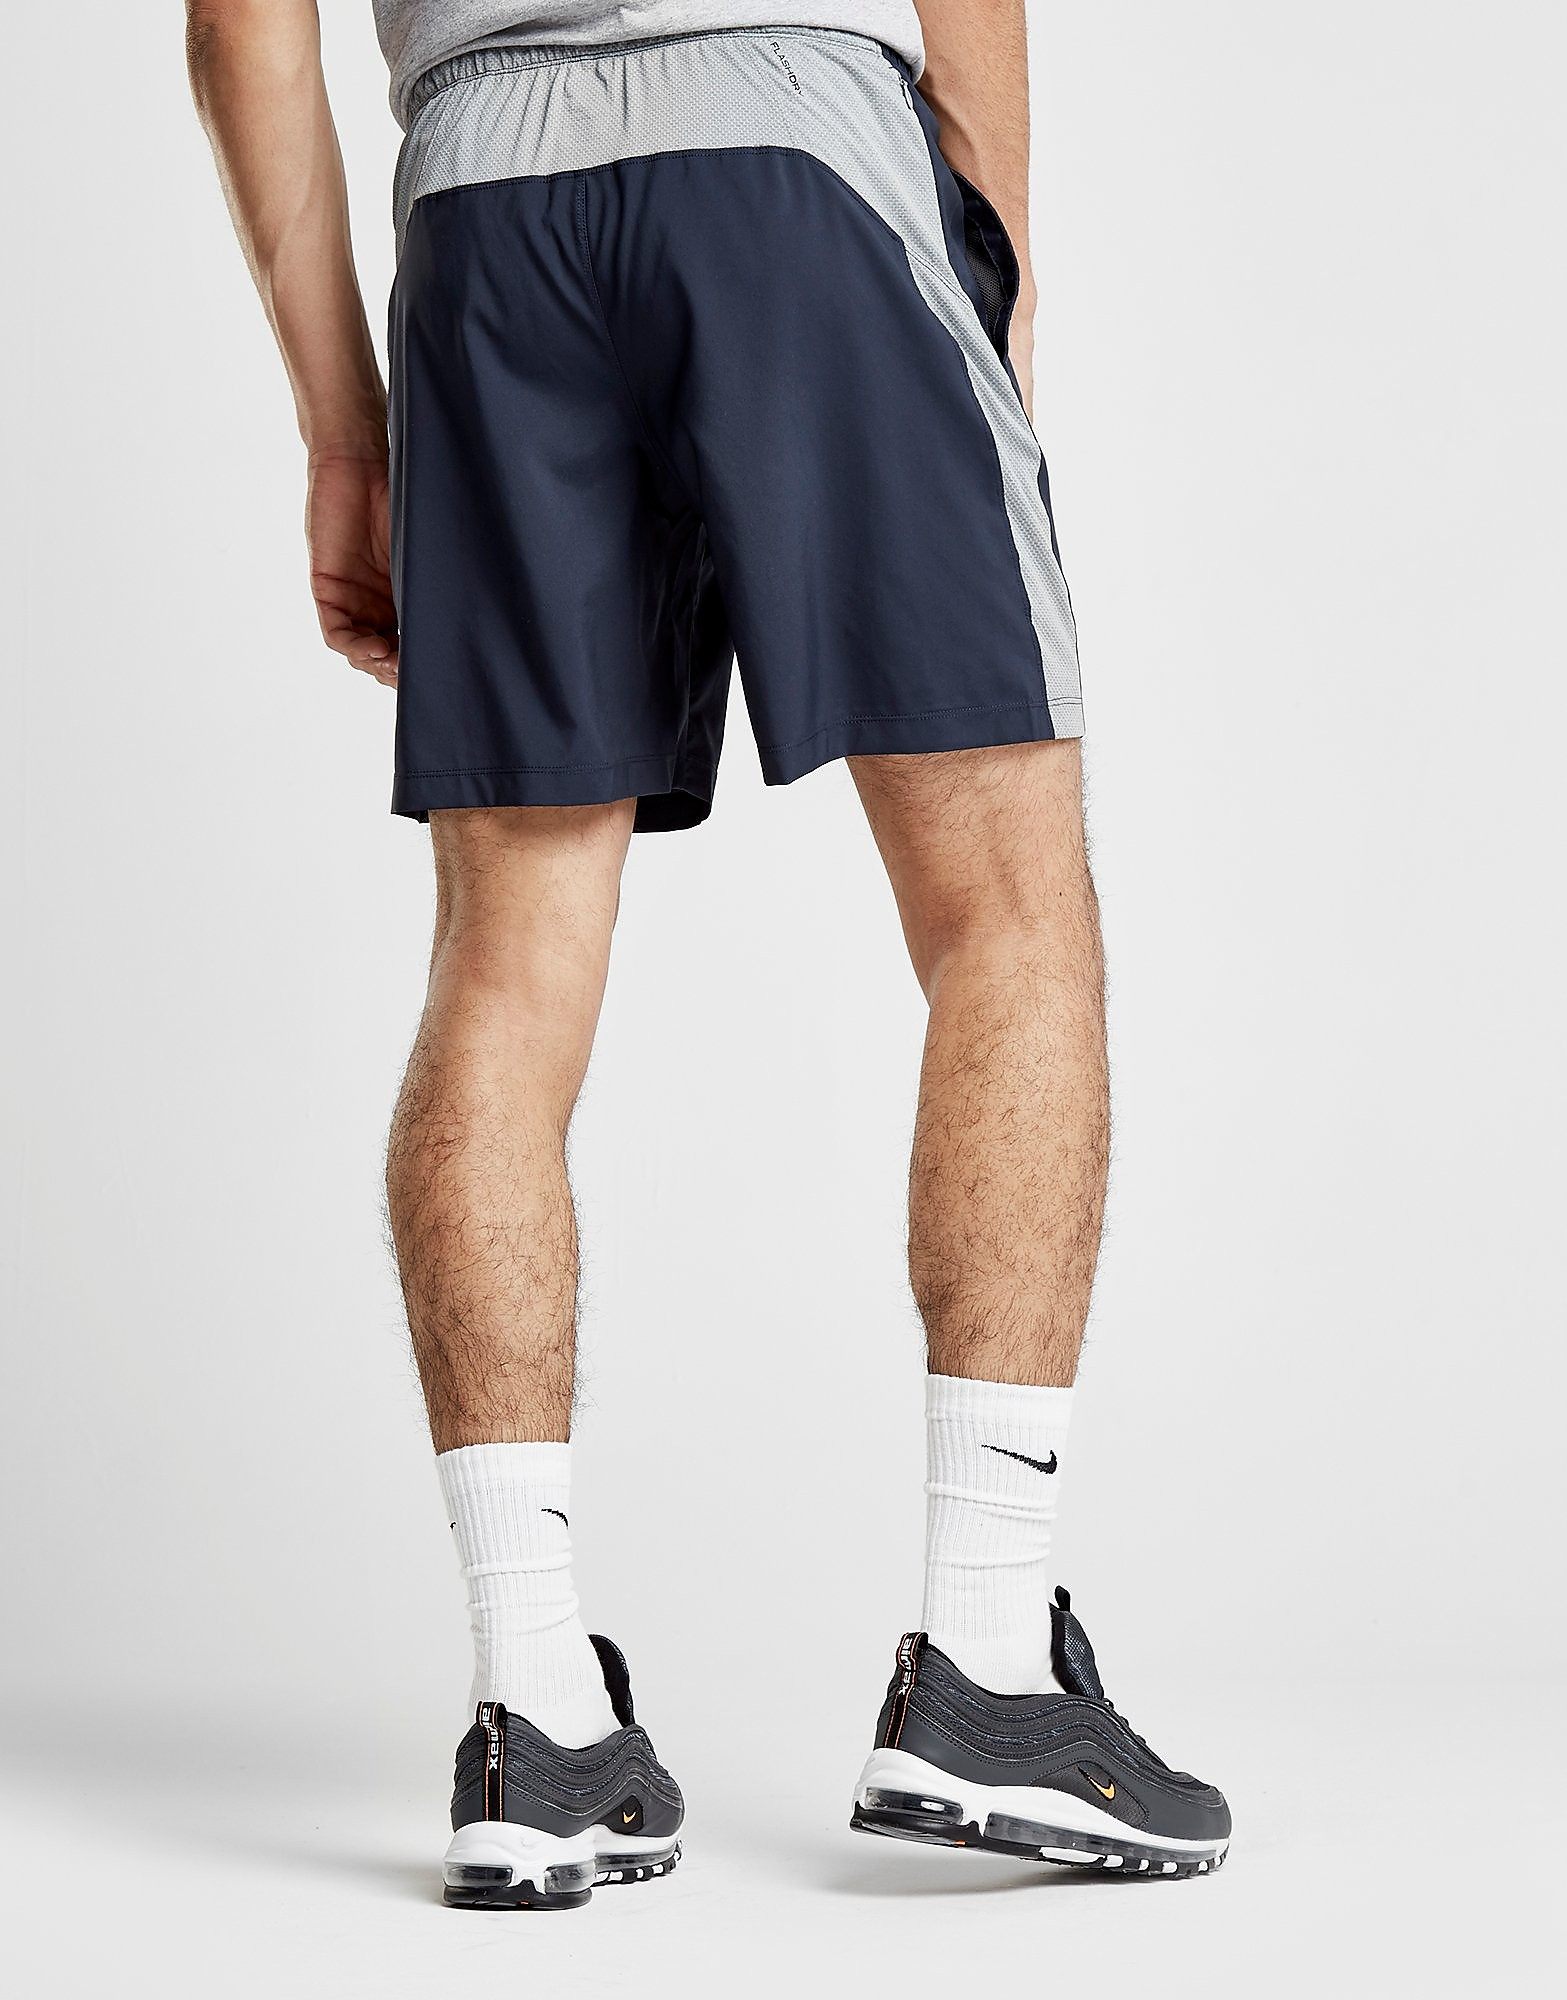 The North Face Reactor Woven Shorts